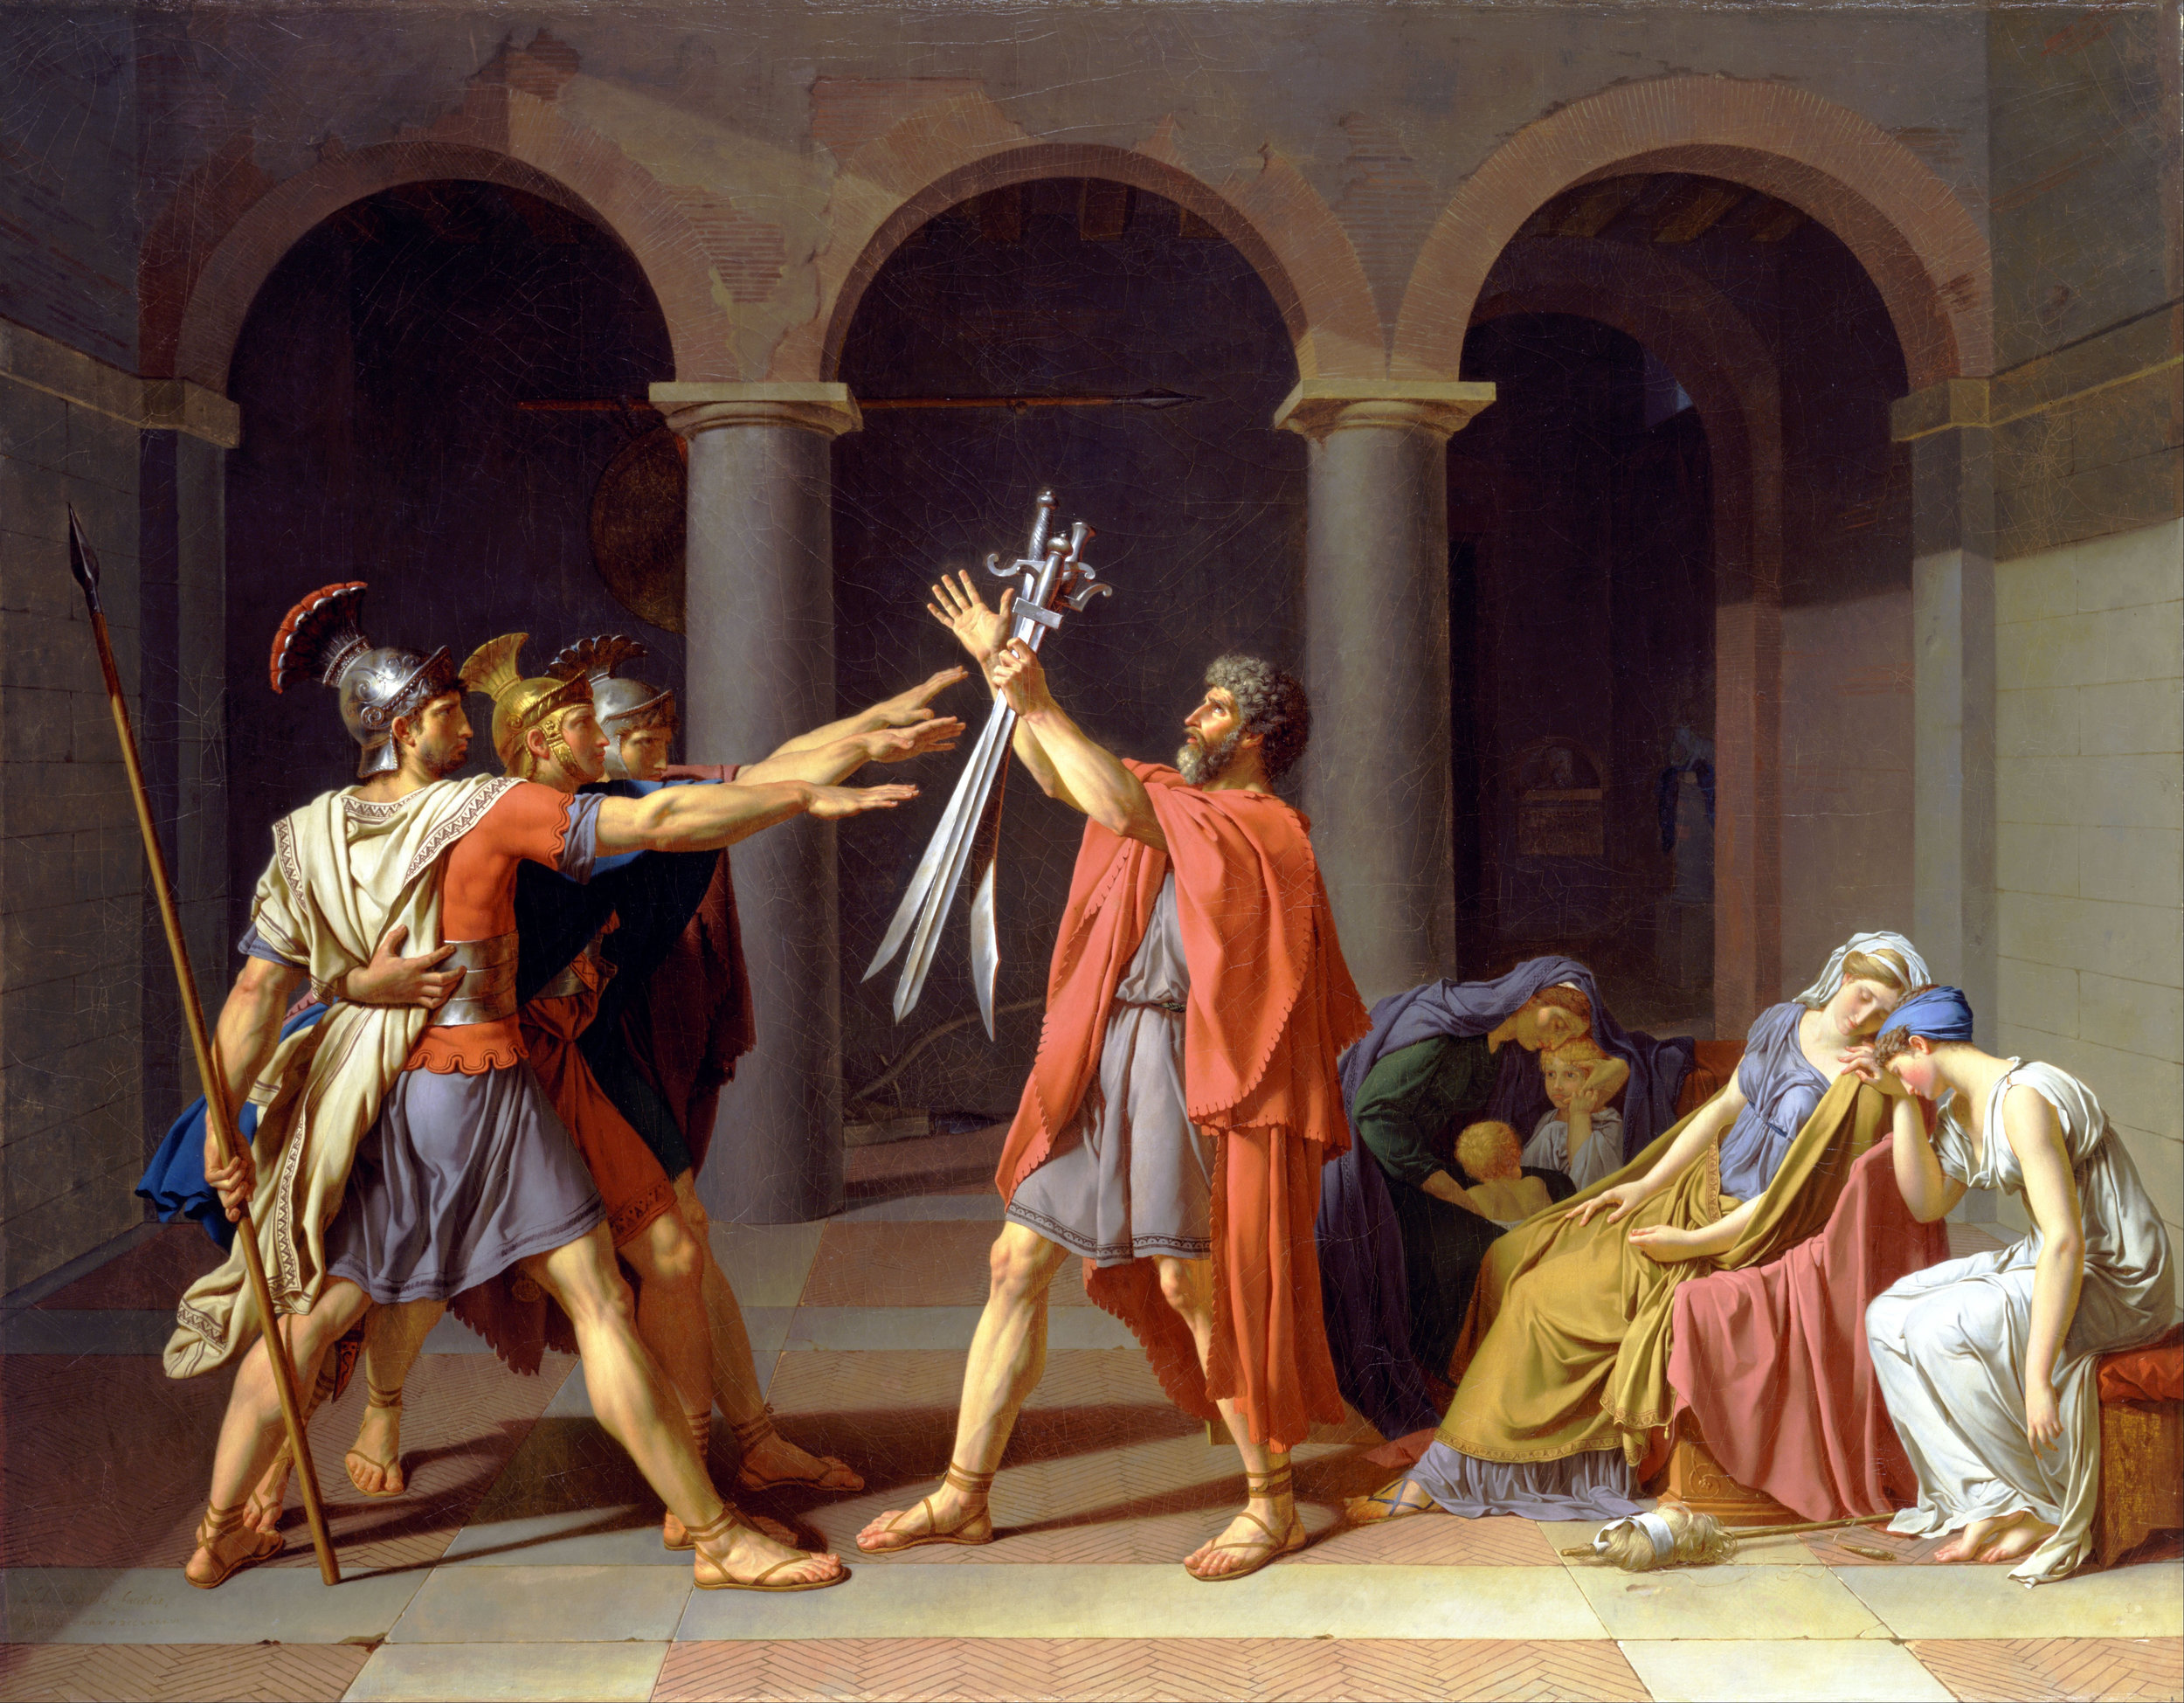 """Jacques-Louis David, """"The Oath of the Horatii"""" (1784)"""